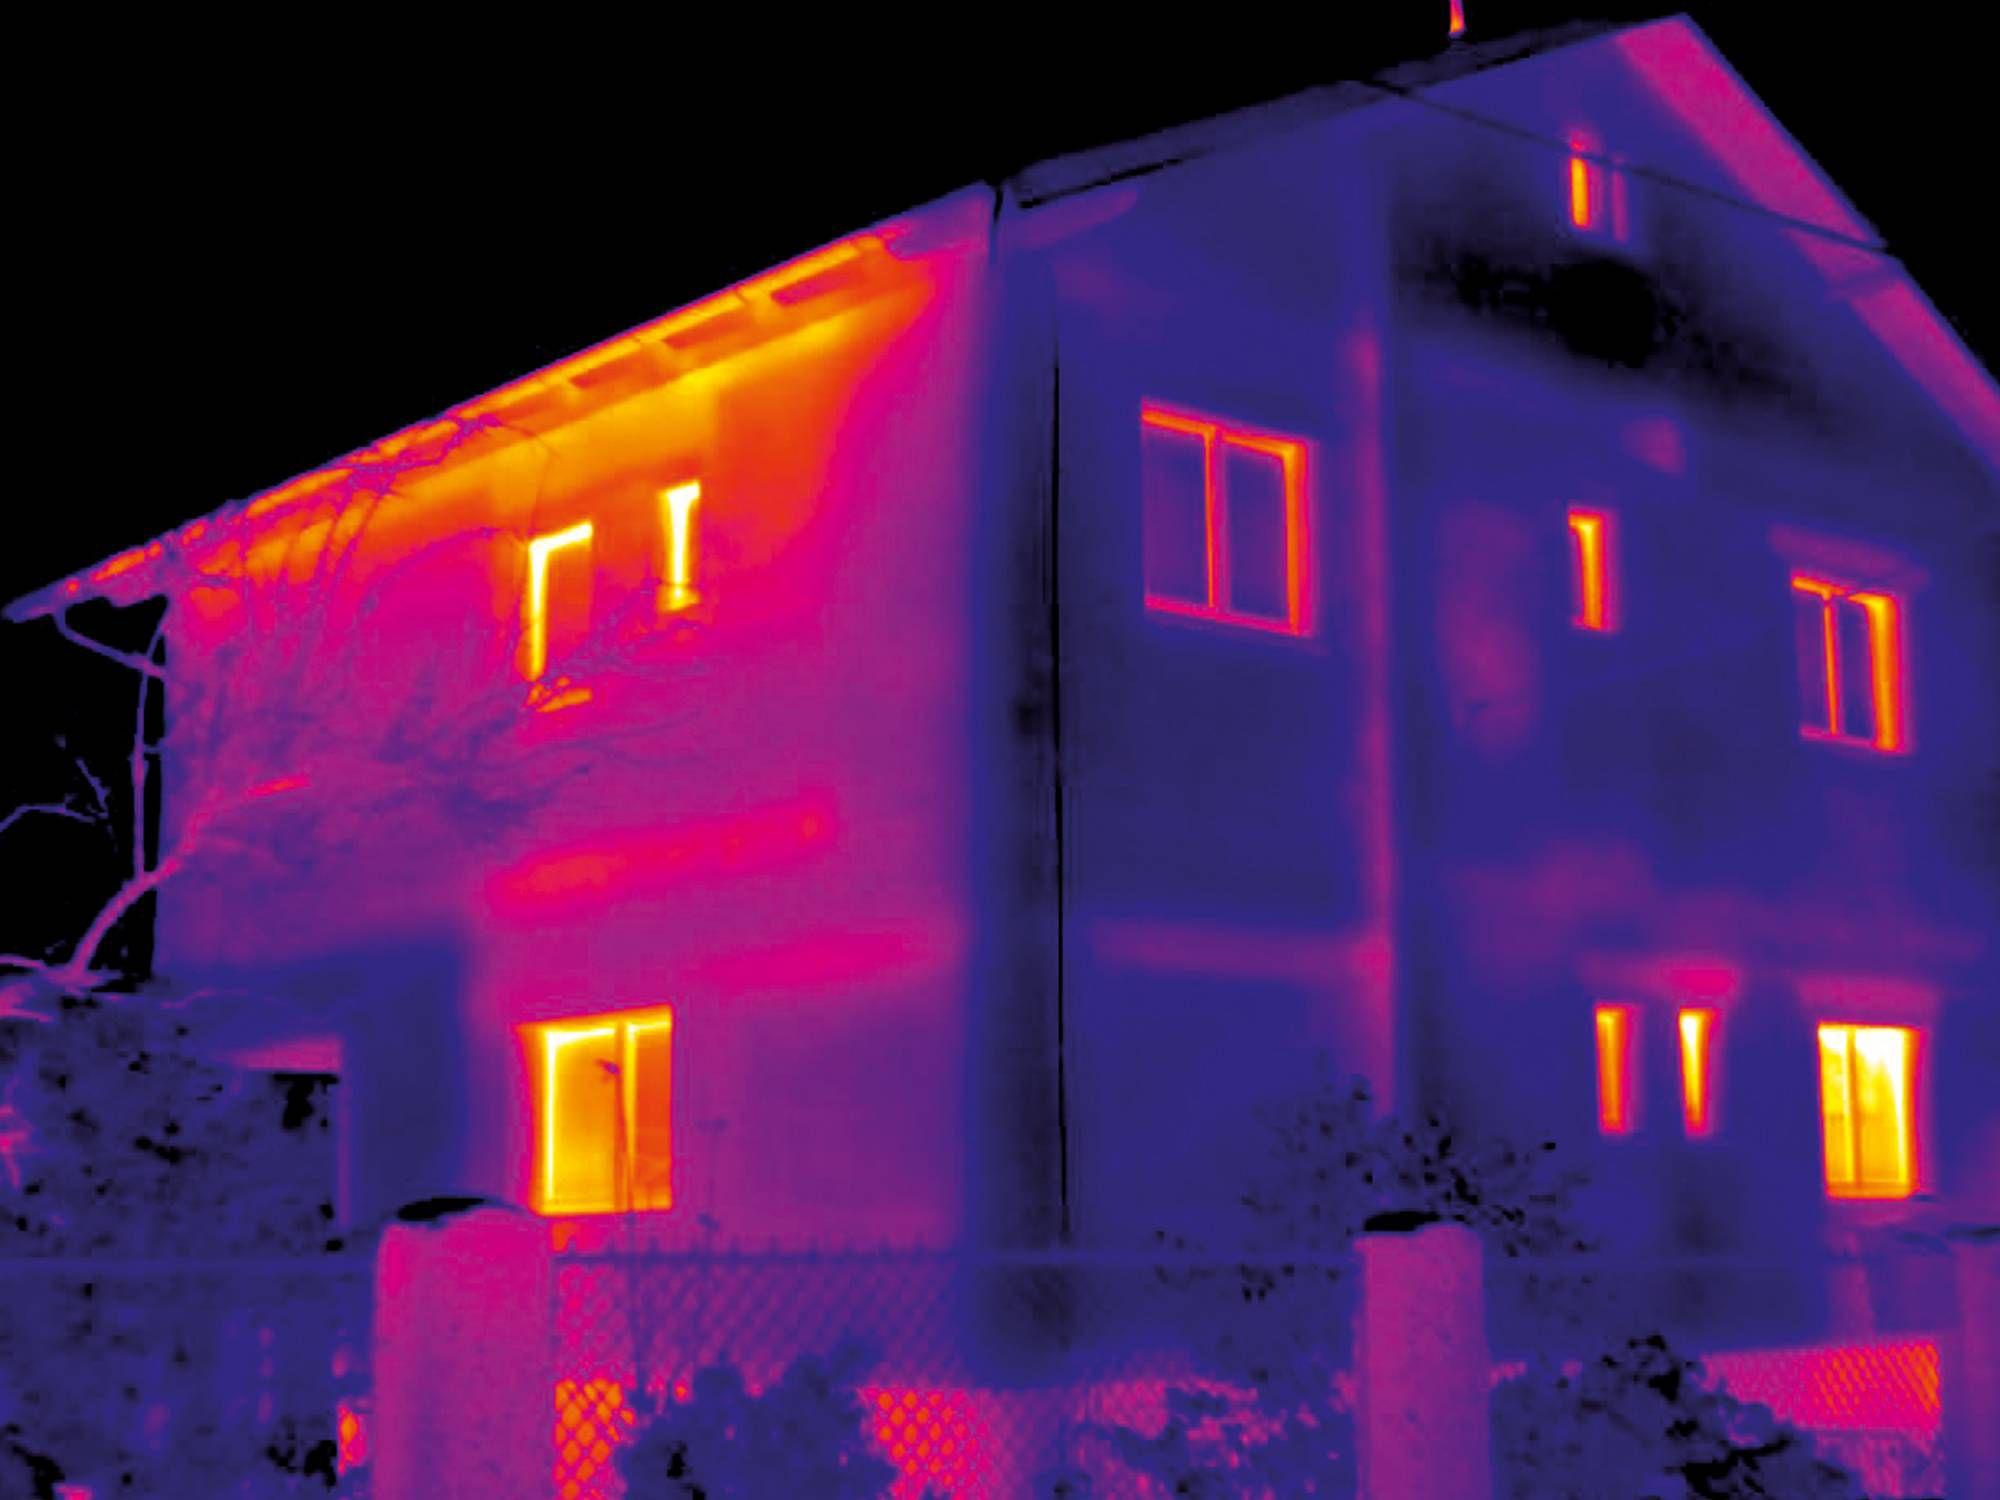 Thermal imager testo 871 - Detecting structural defects and ensuring building quality